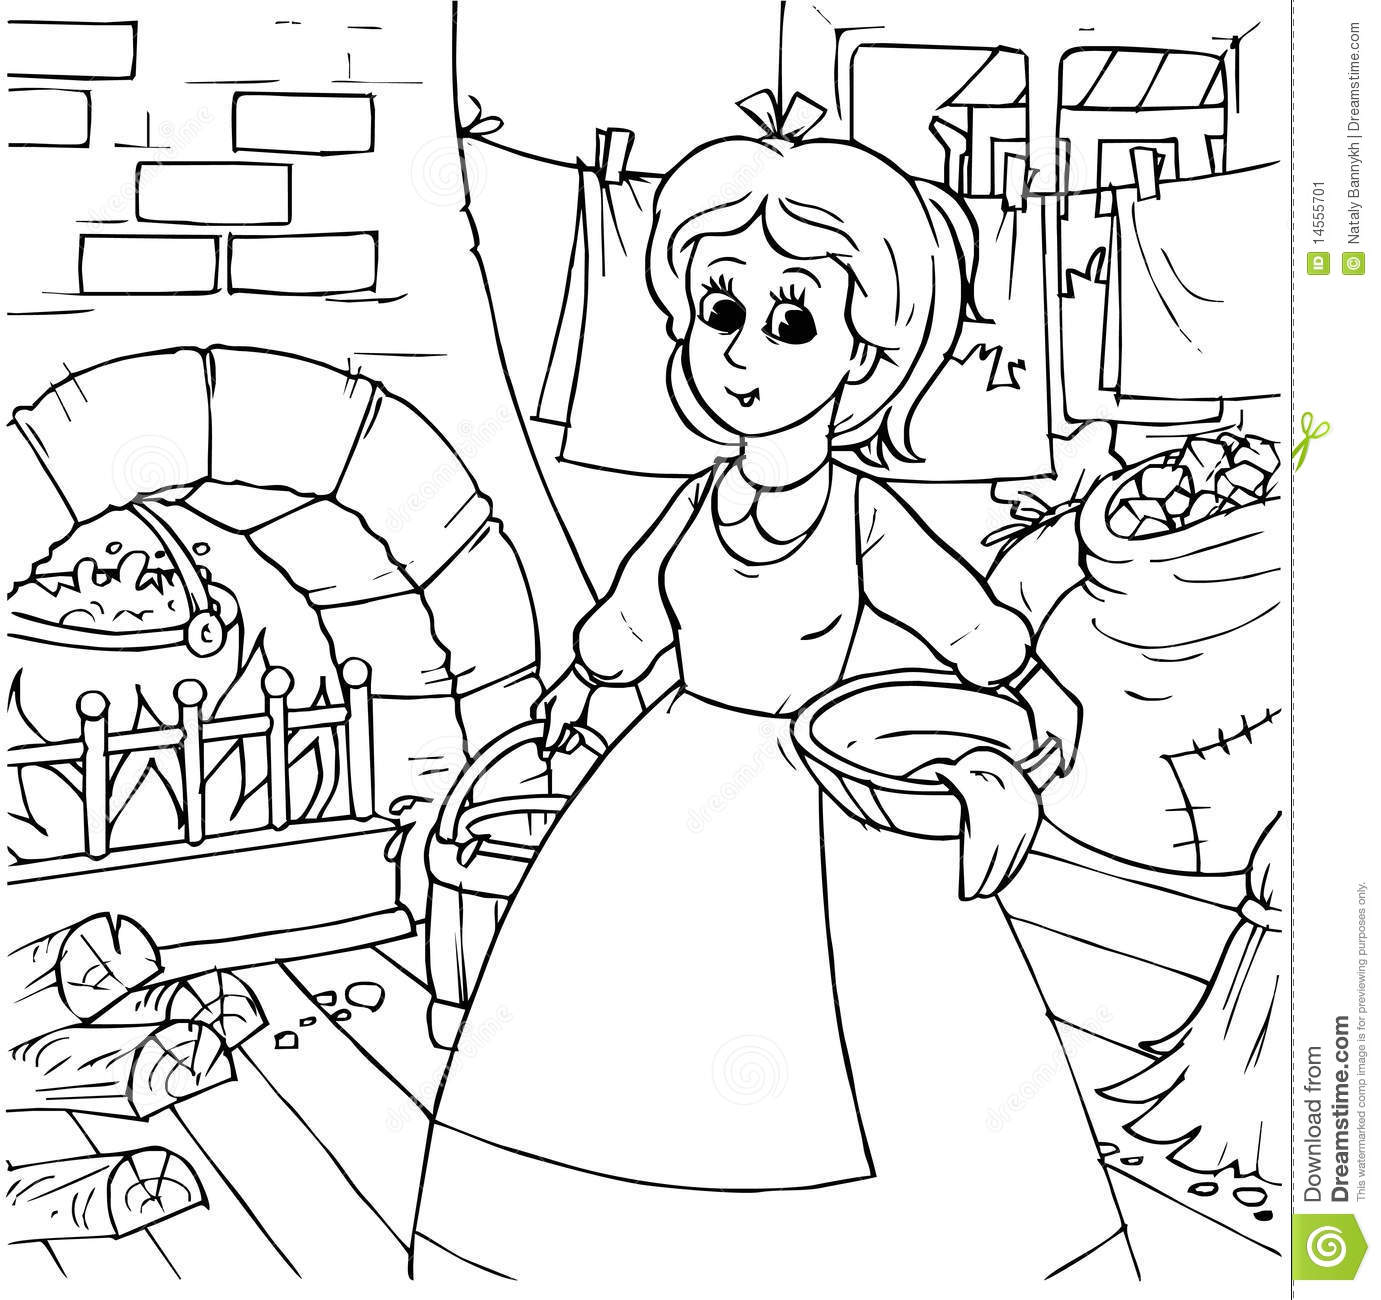 fireside girls coloring pages | Cinderella Stock Image - Image: 14555701